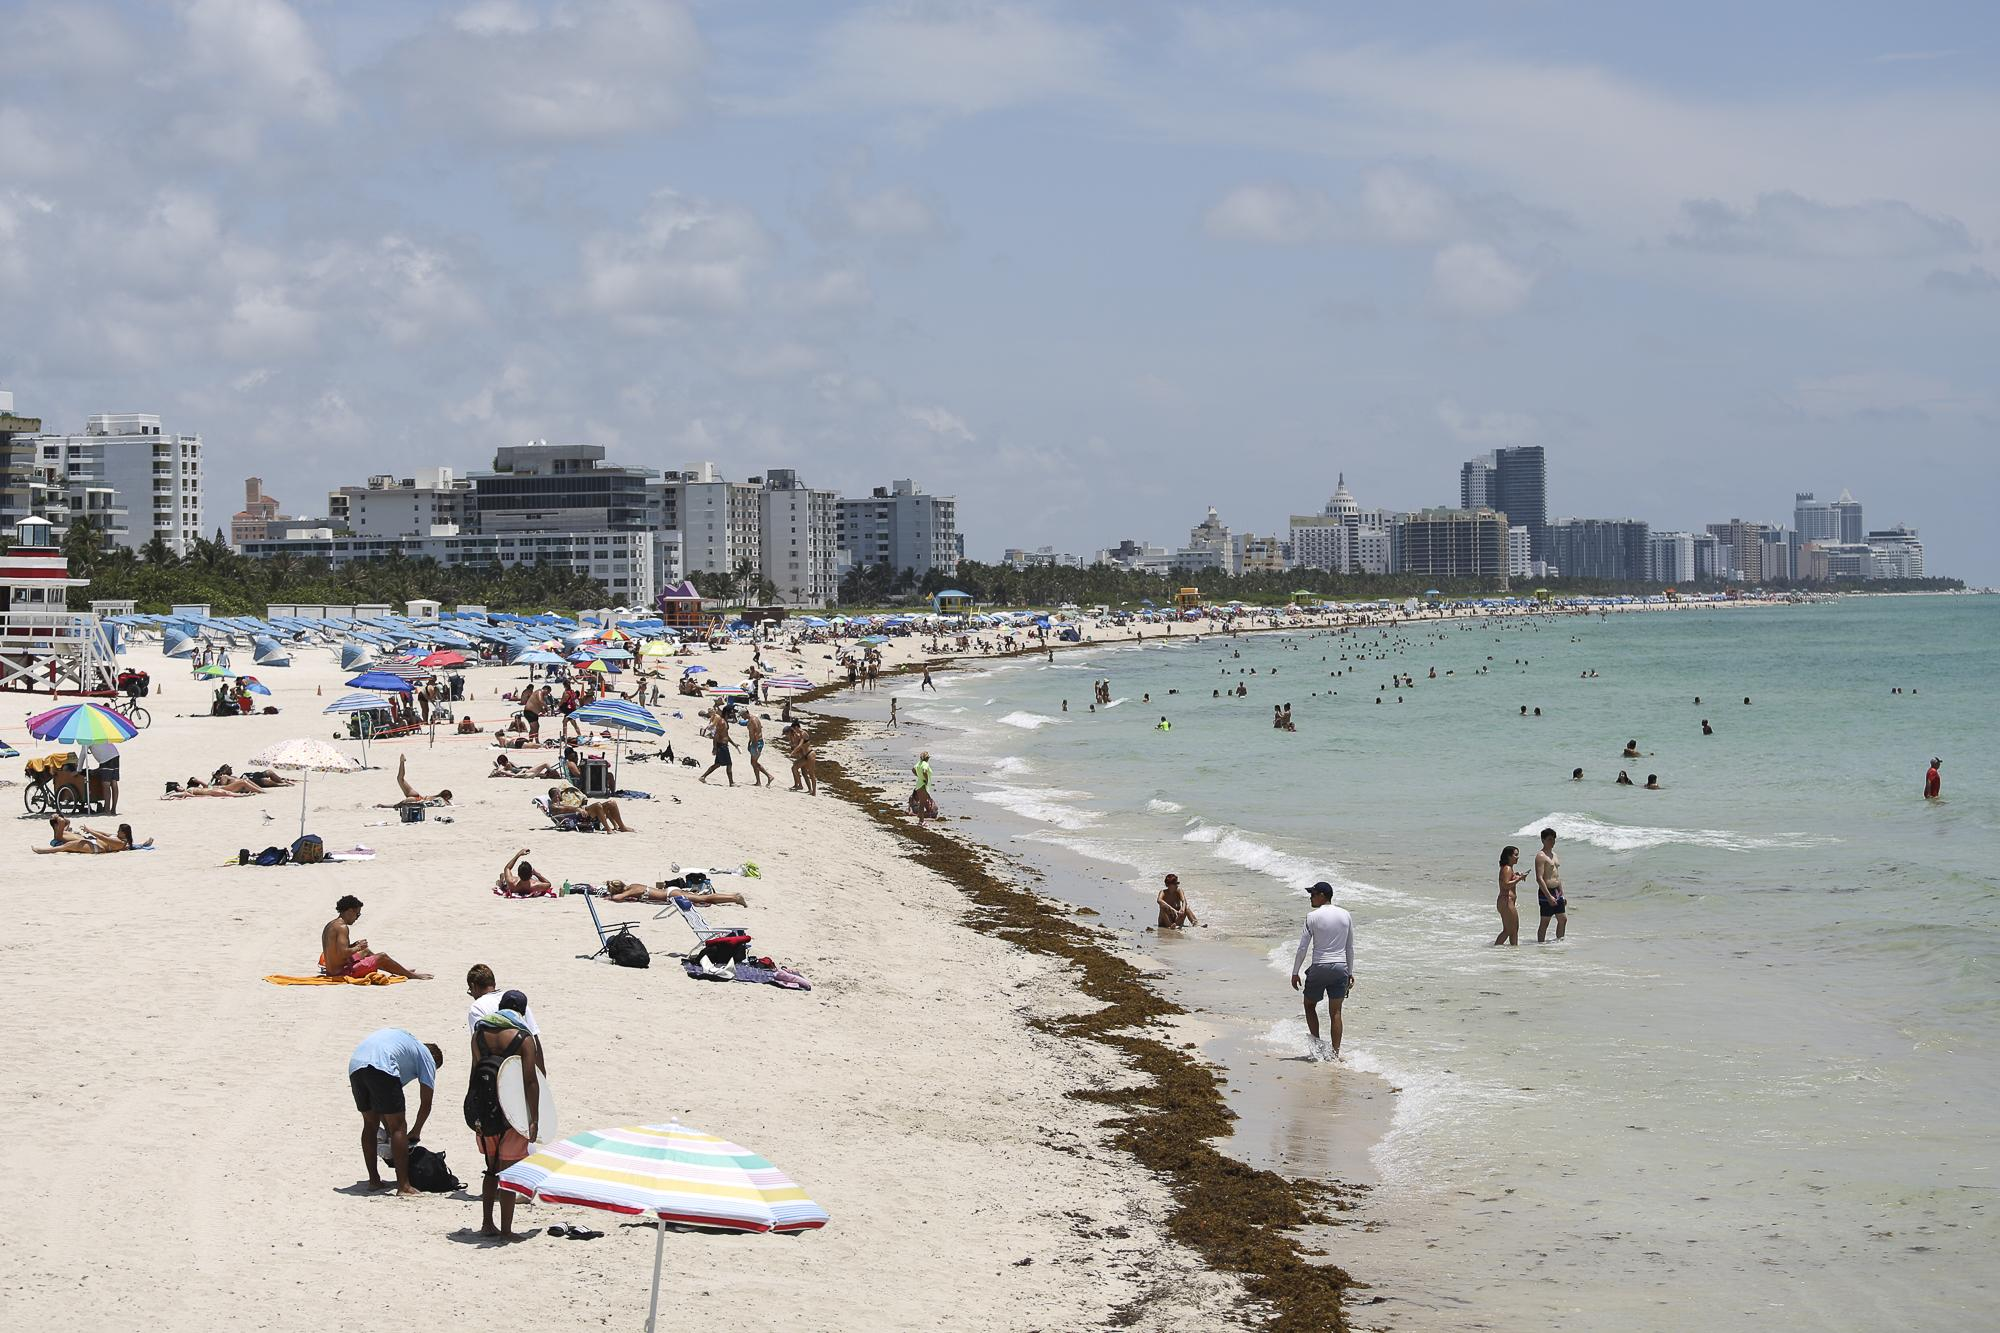 A general view of South Beach as beaches are reopened with restrictions to limit the spread of the coronavirus disease (COVID-19), in Miami Beach, Florida, U.S., June 10, 2020. REUTERS/Marco Bello